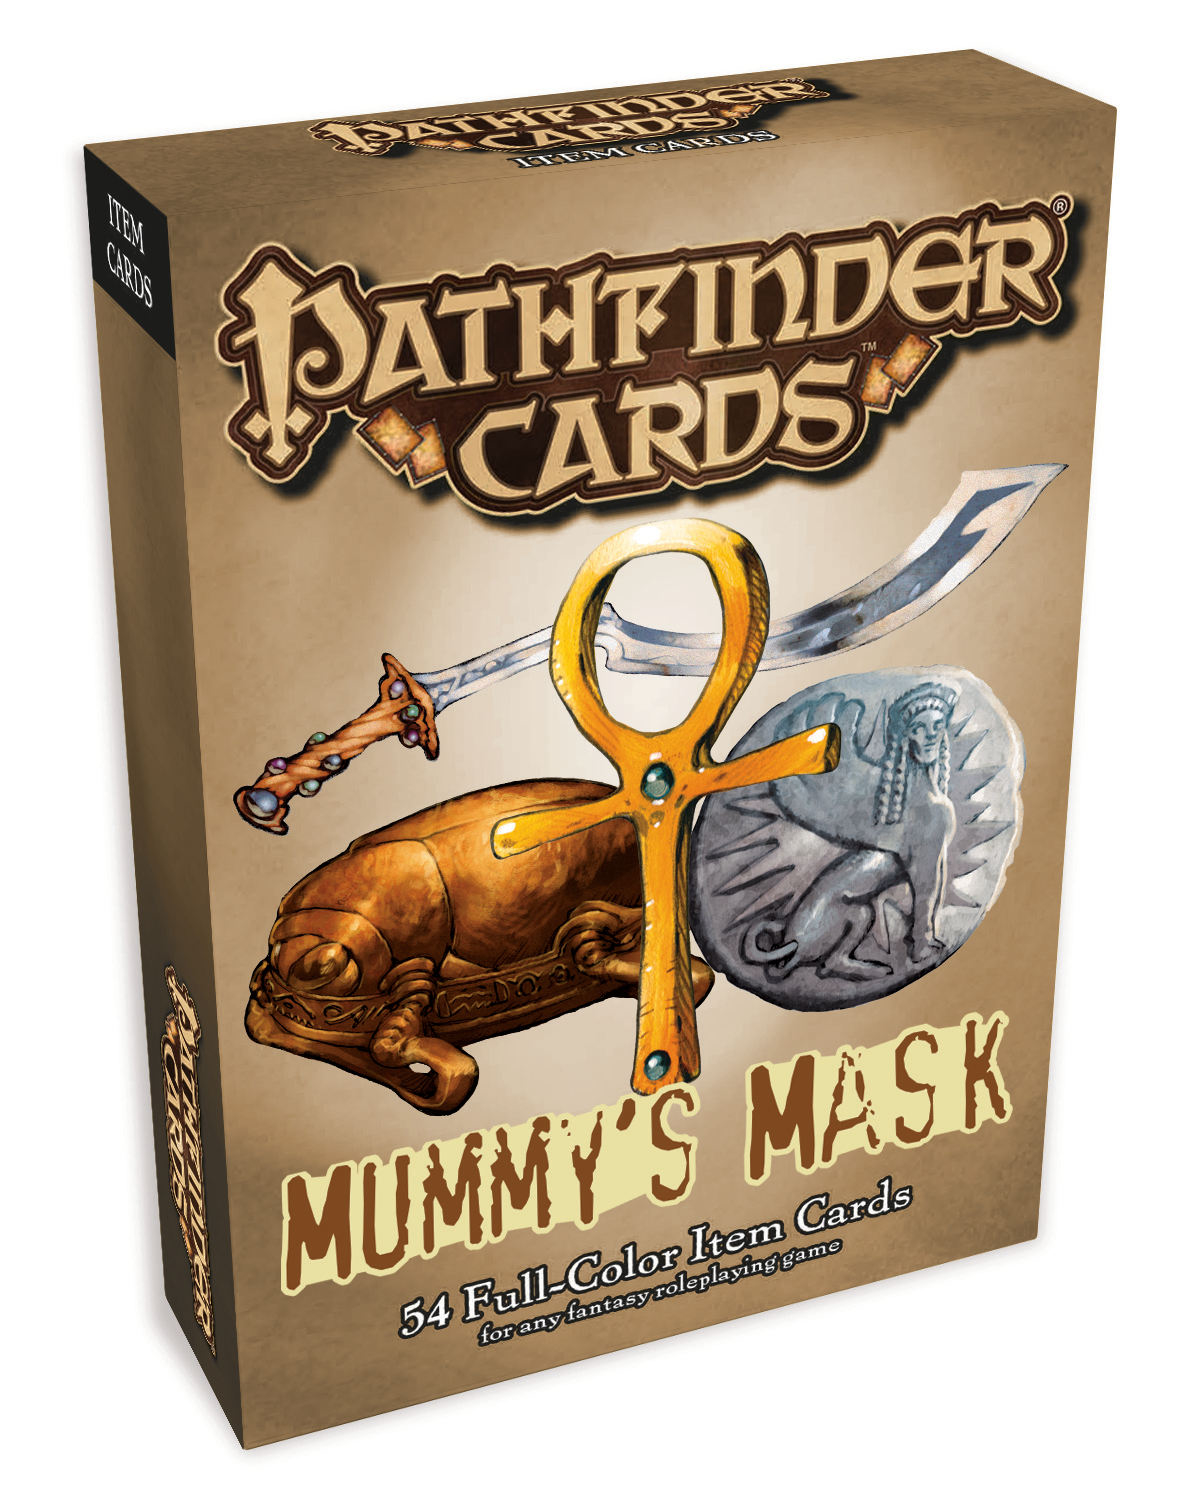 PATHFINDER CARDS MUMMYS MASK ITEM CARDS DECK